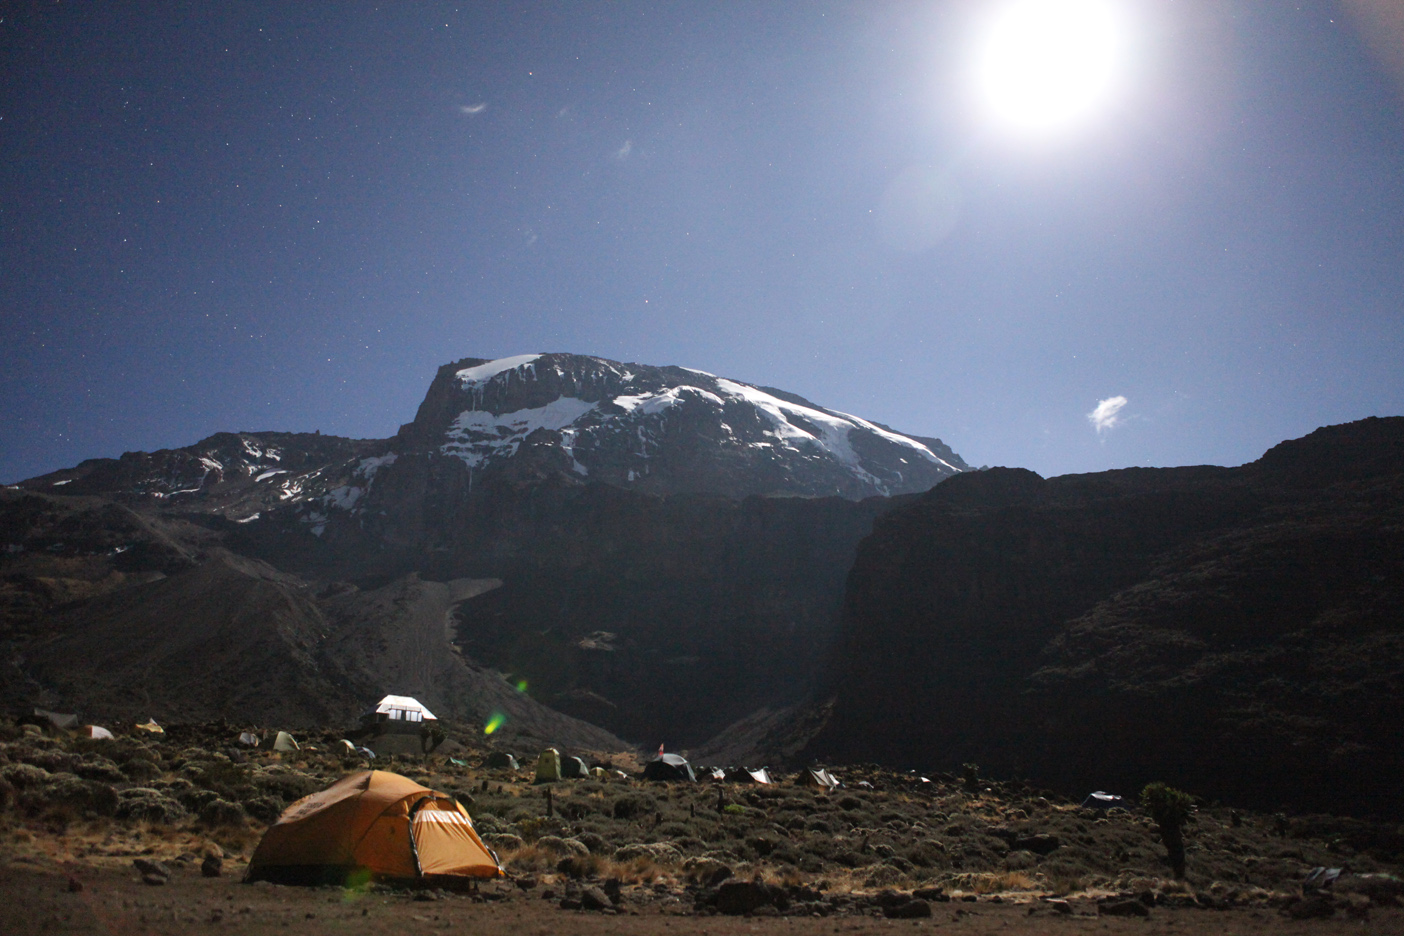 A view of the summit from our camp at the base of the Barranco Wall (on the right) around 9:30PM under a full moon.